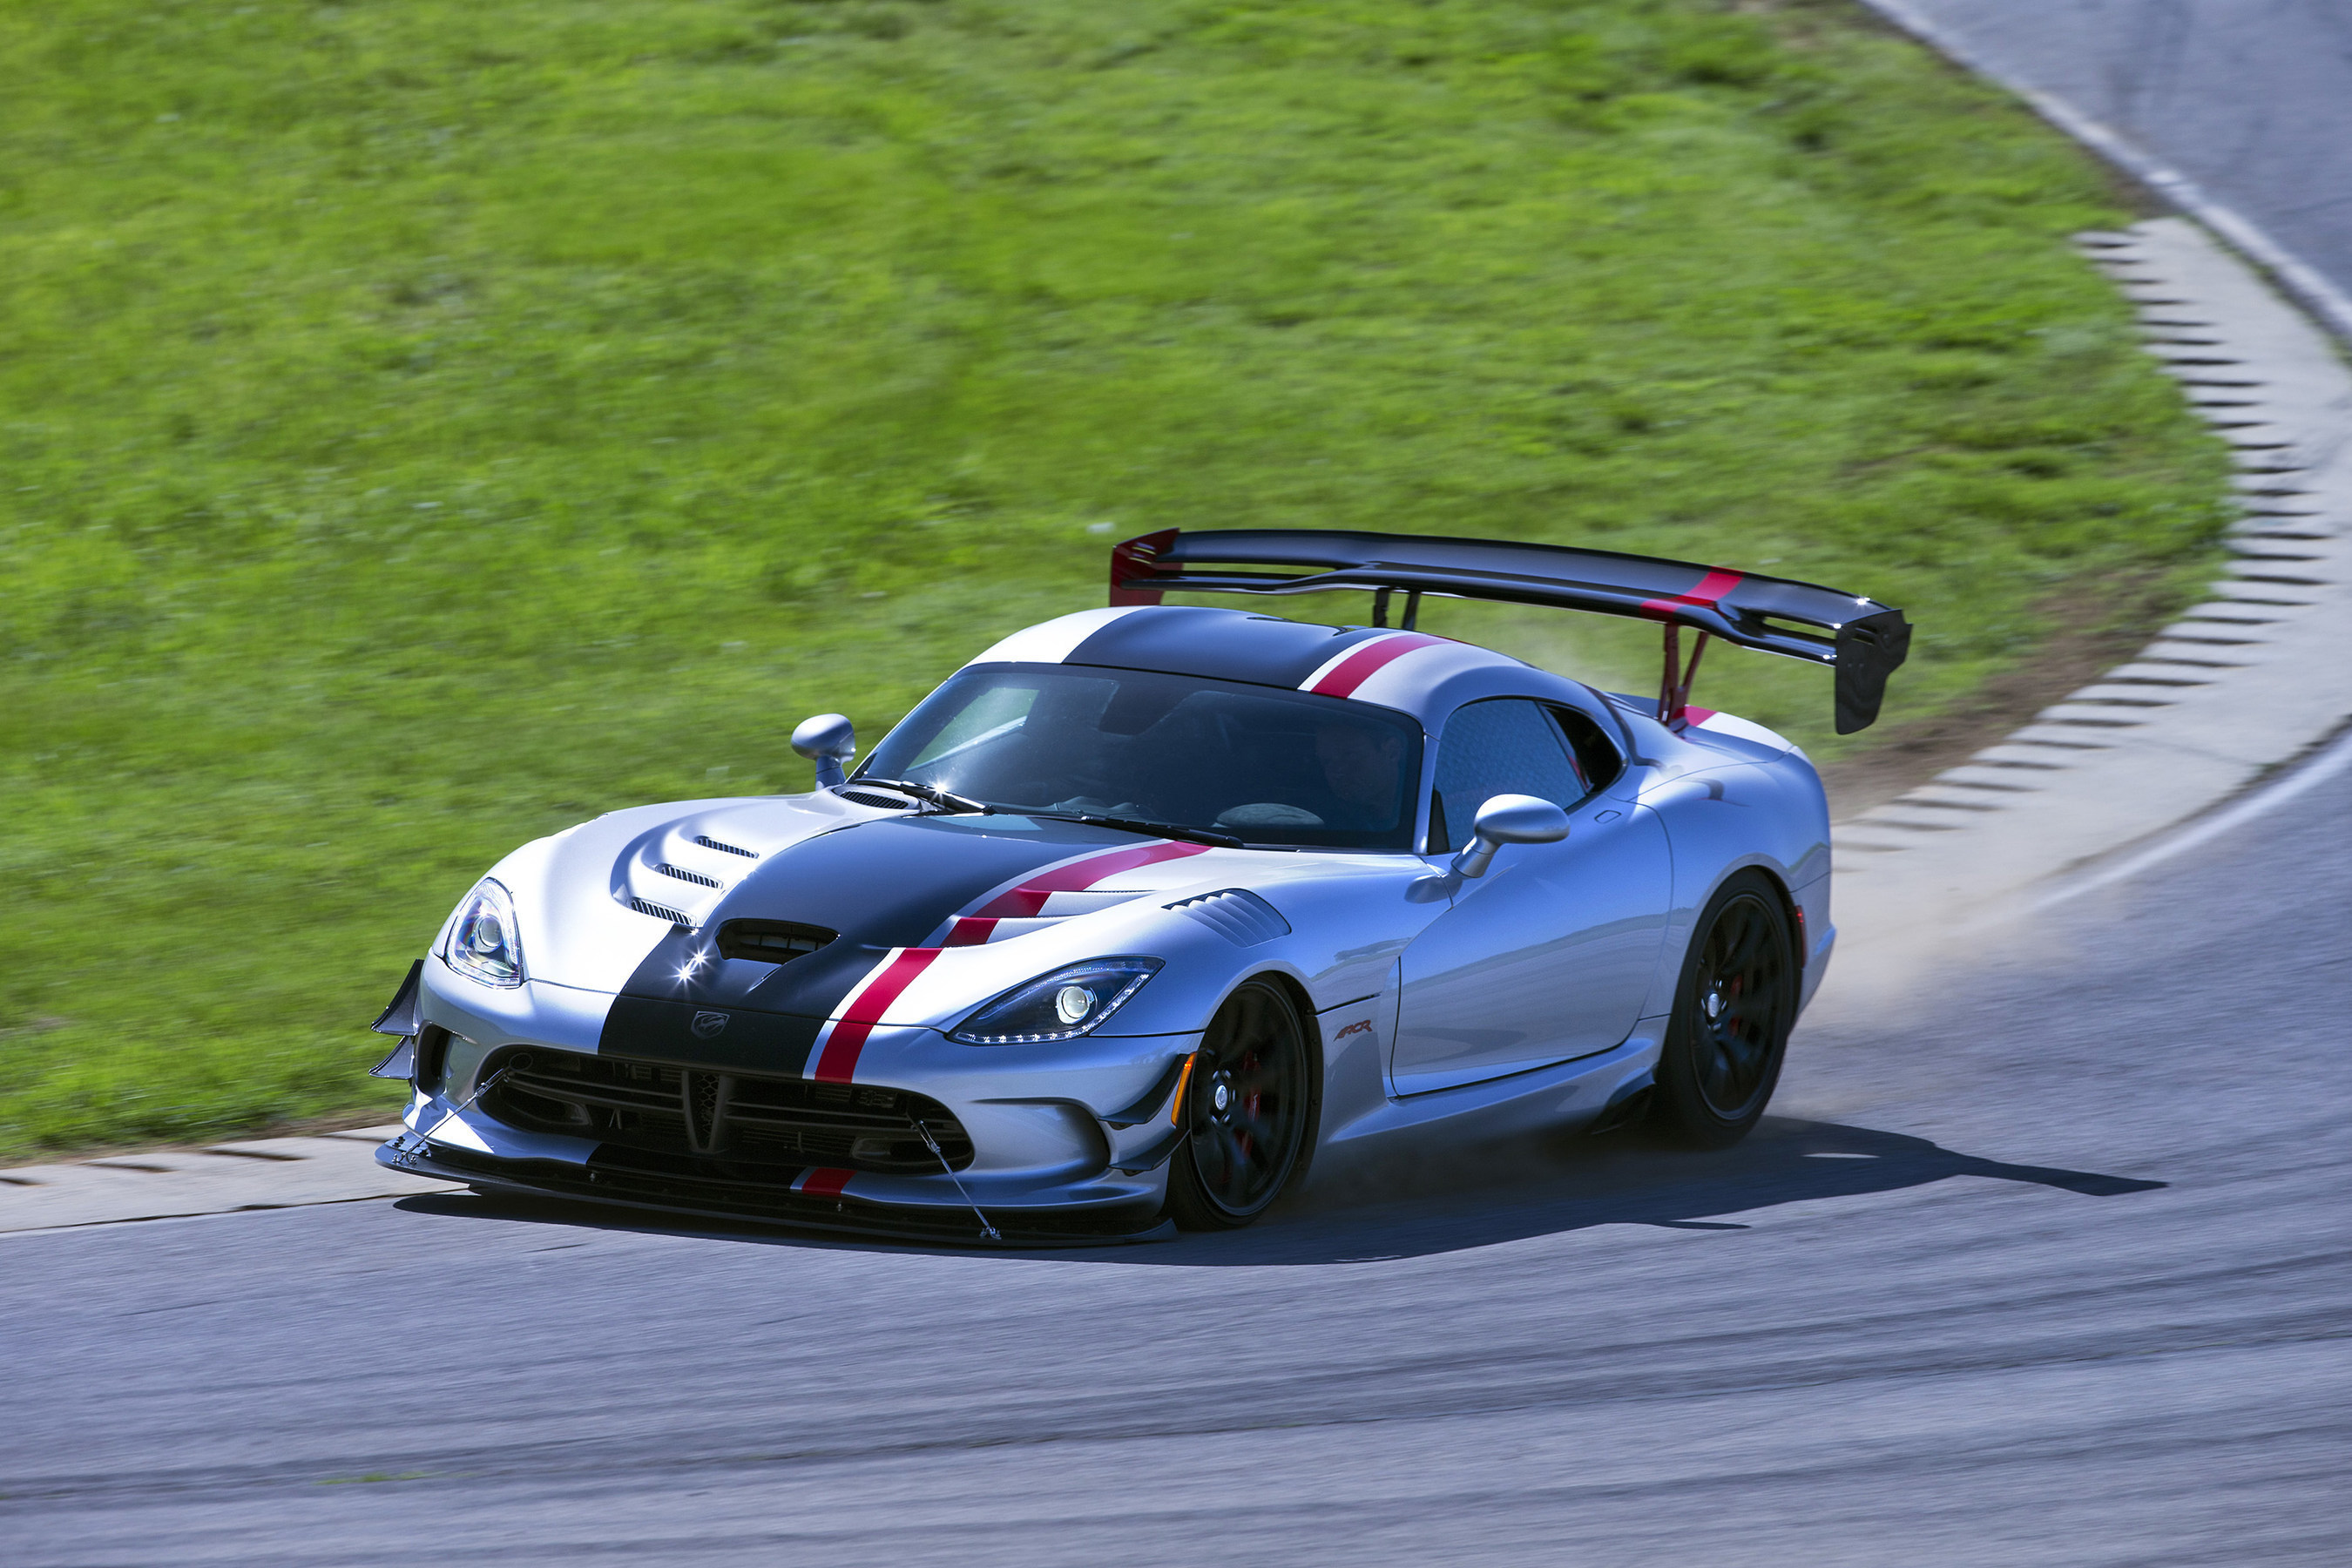 New 2016 Dodge Viper Acr Is Undisputed Track Record King After Setting More Road Course Lap